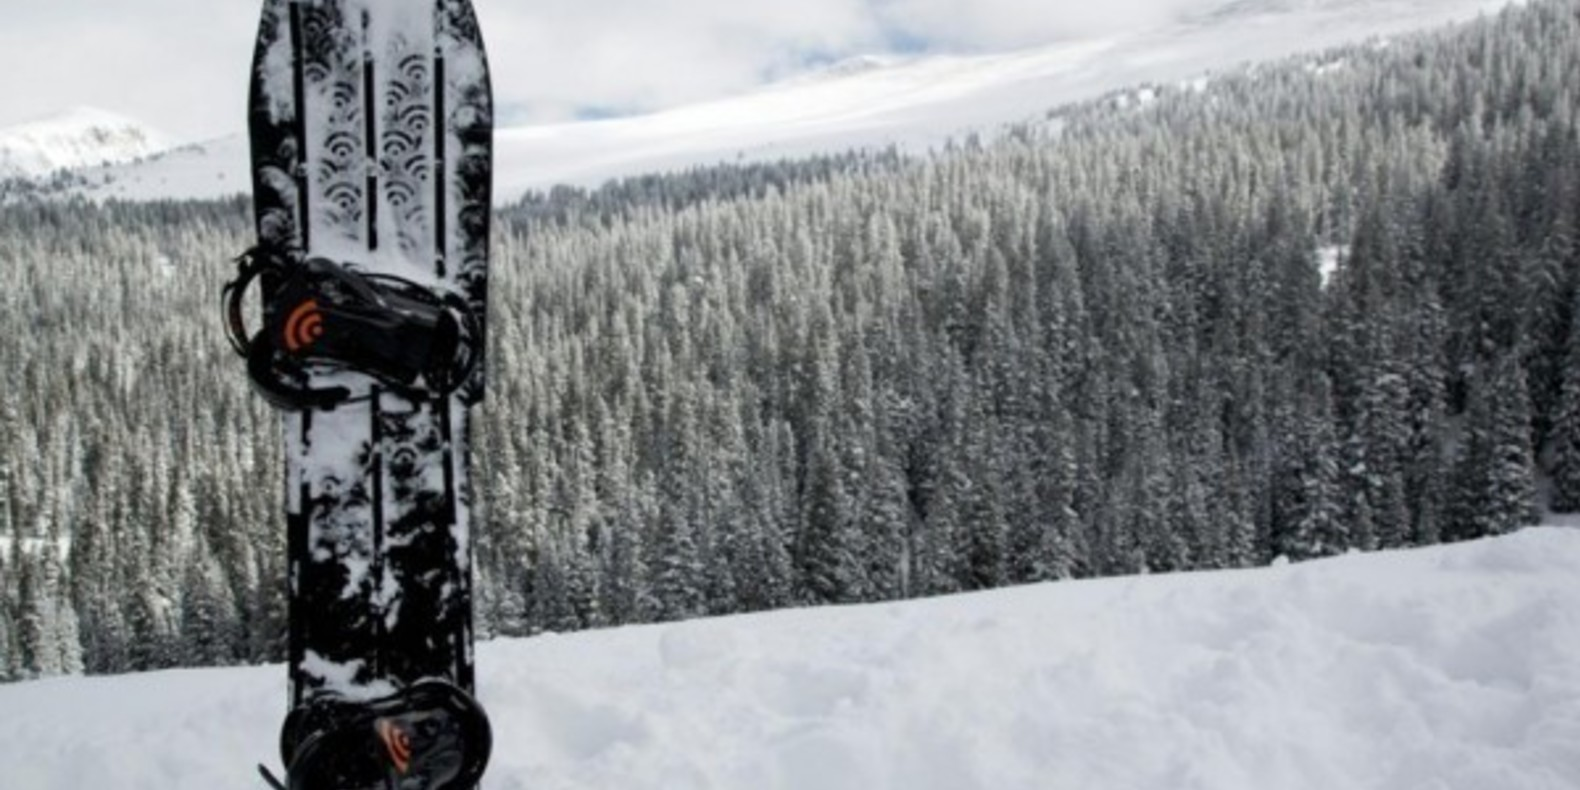 The first snowboard printed in 3D